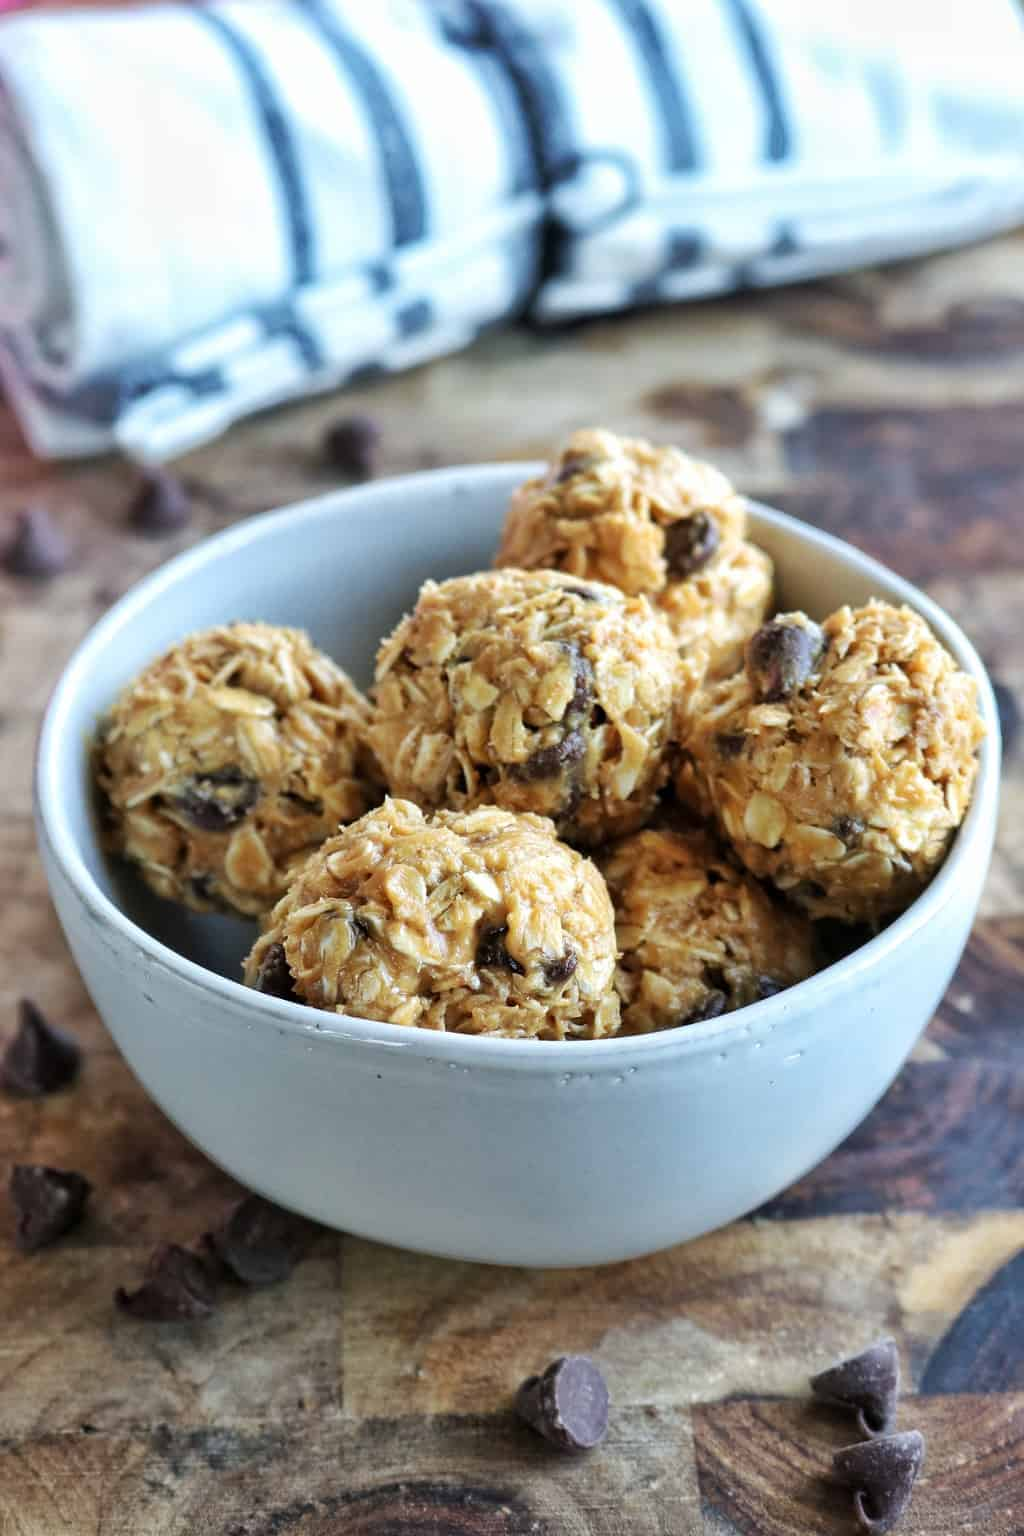 oatmeal peanut butter balls shown stacked in a white bowl on a wood surface with chocolate chips around it.